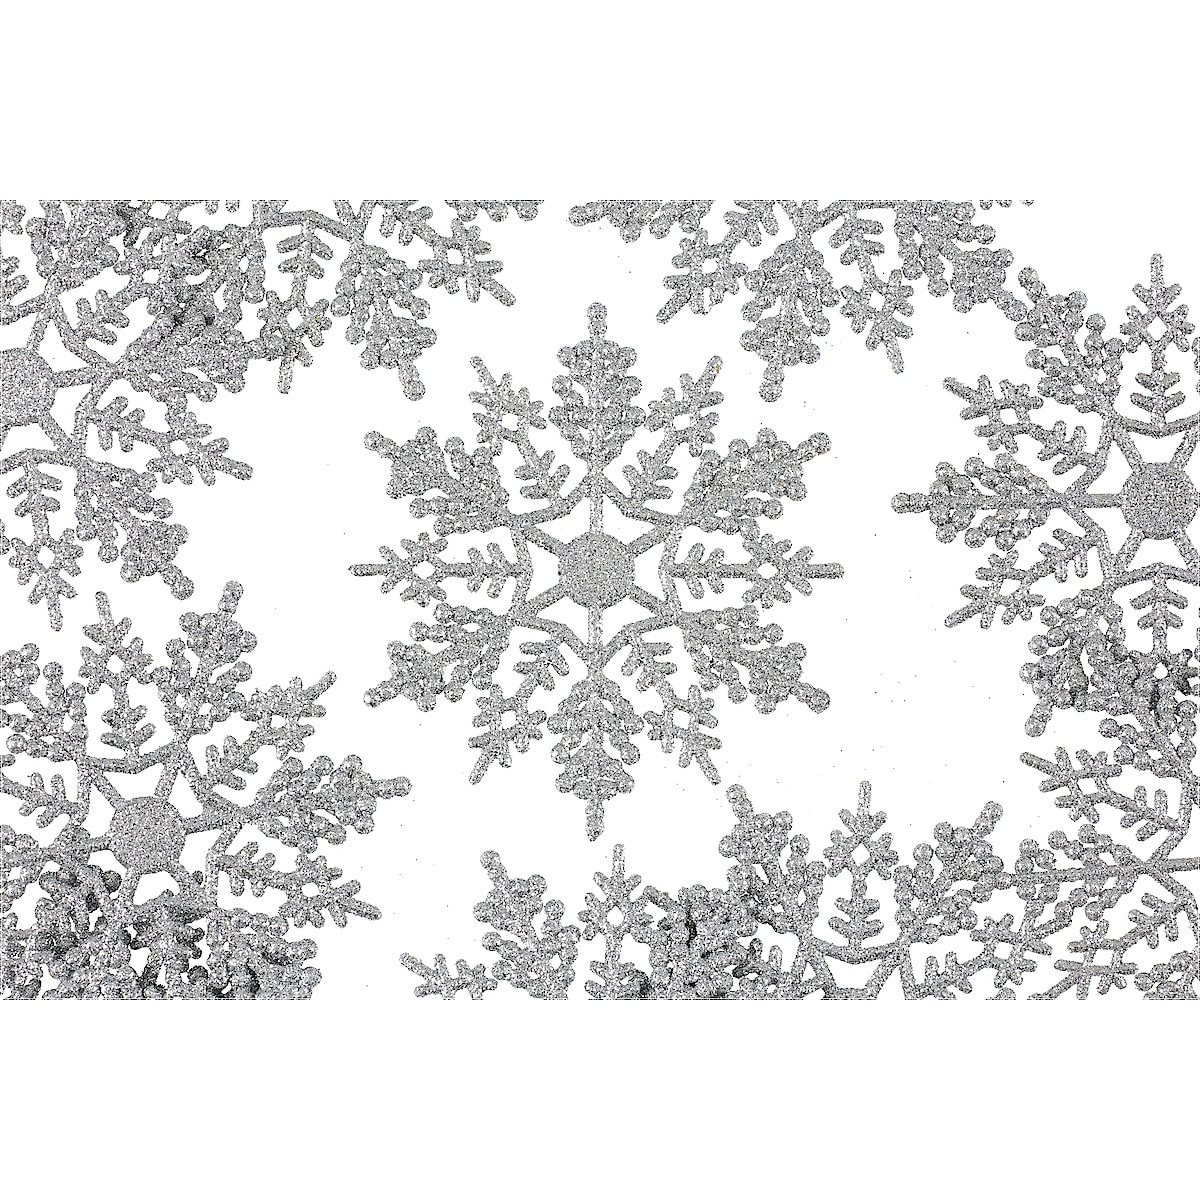 Snowflake Decorations 10-pack